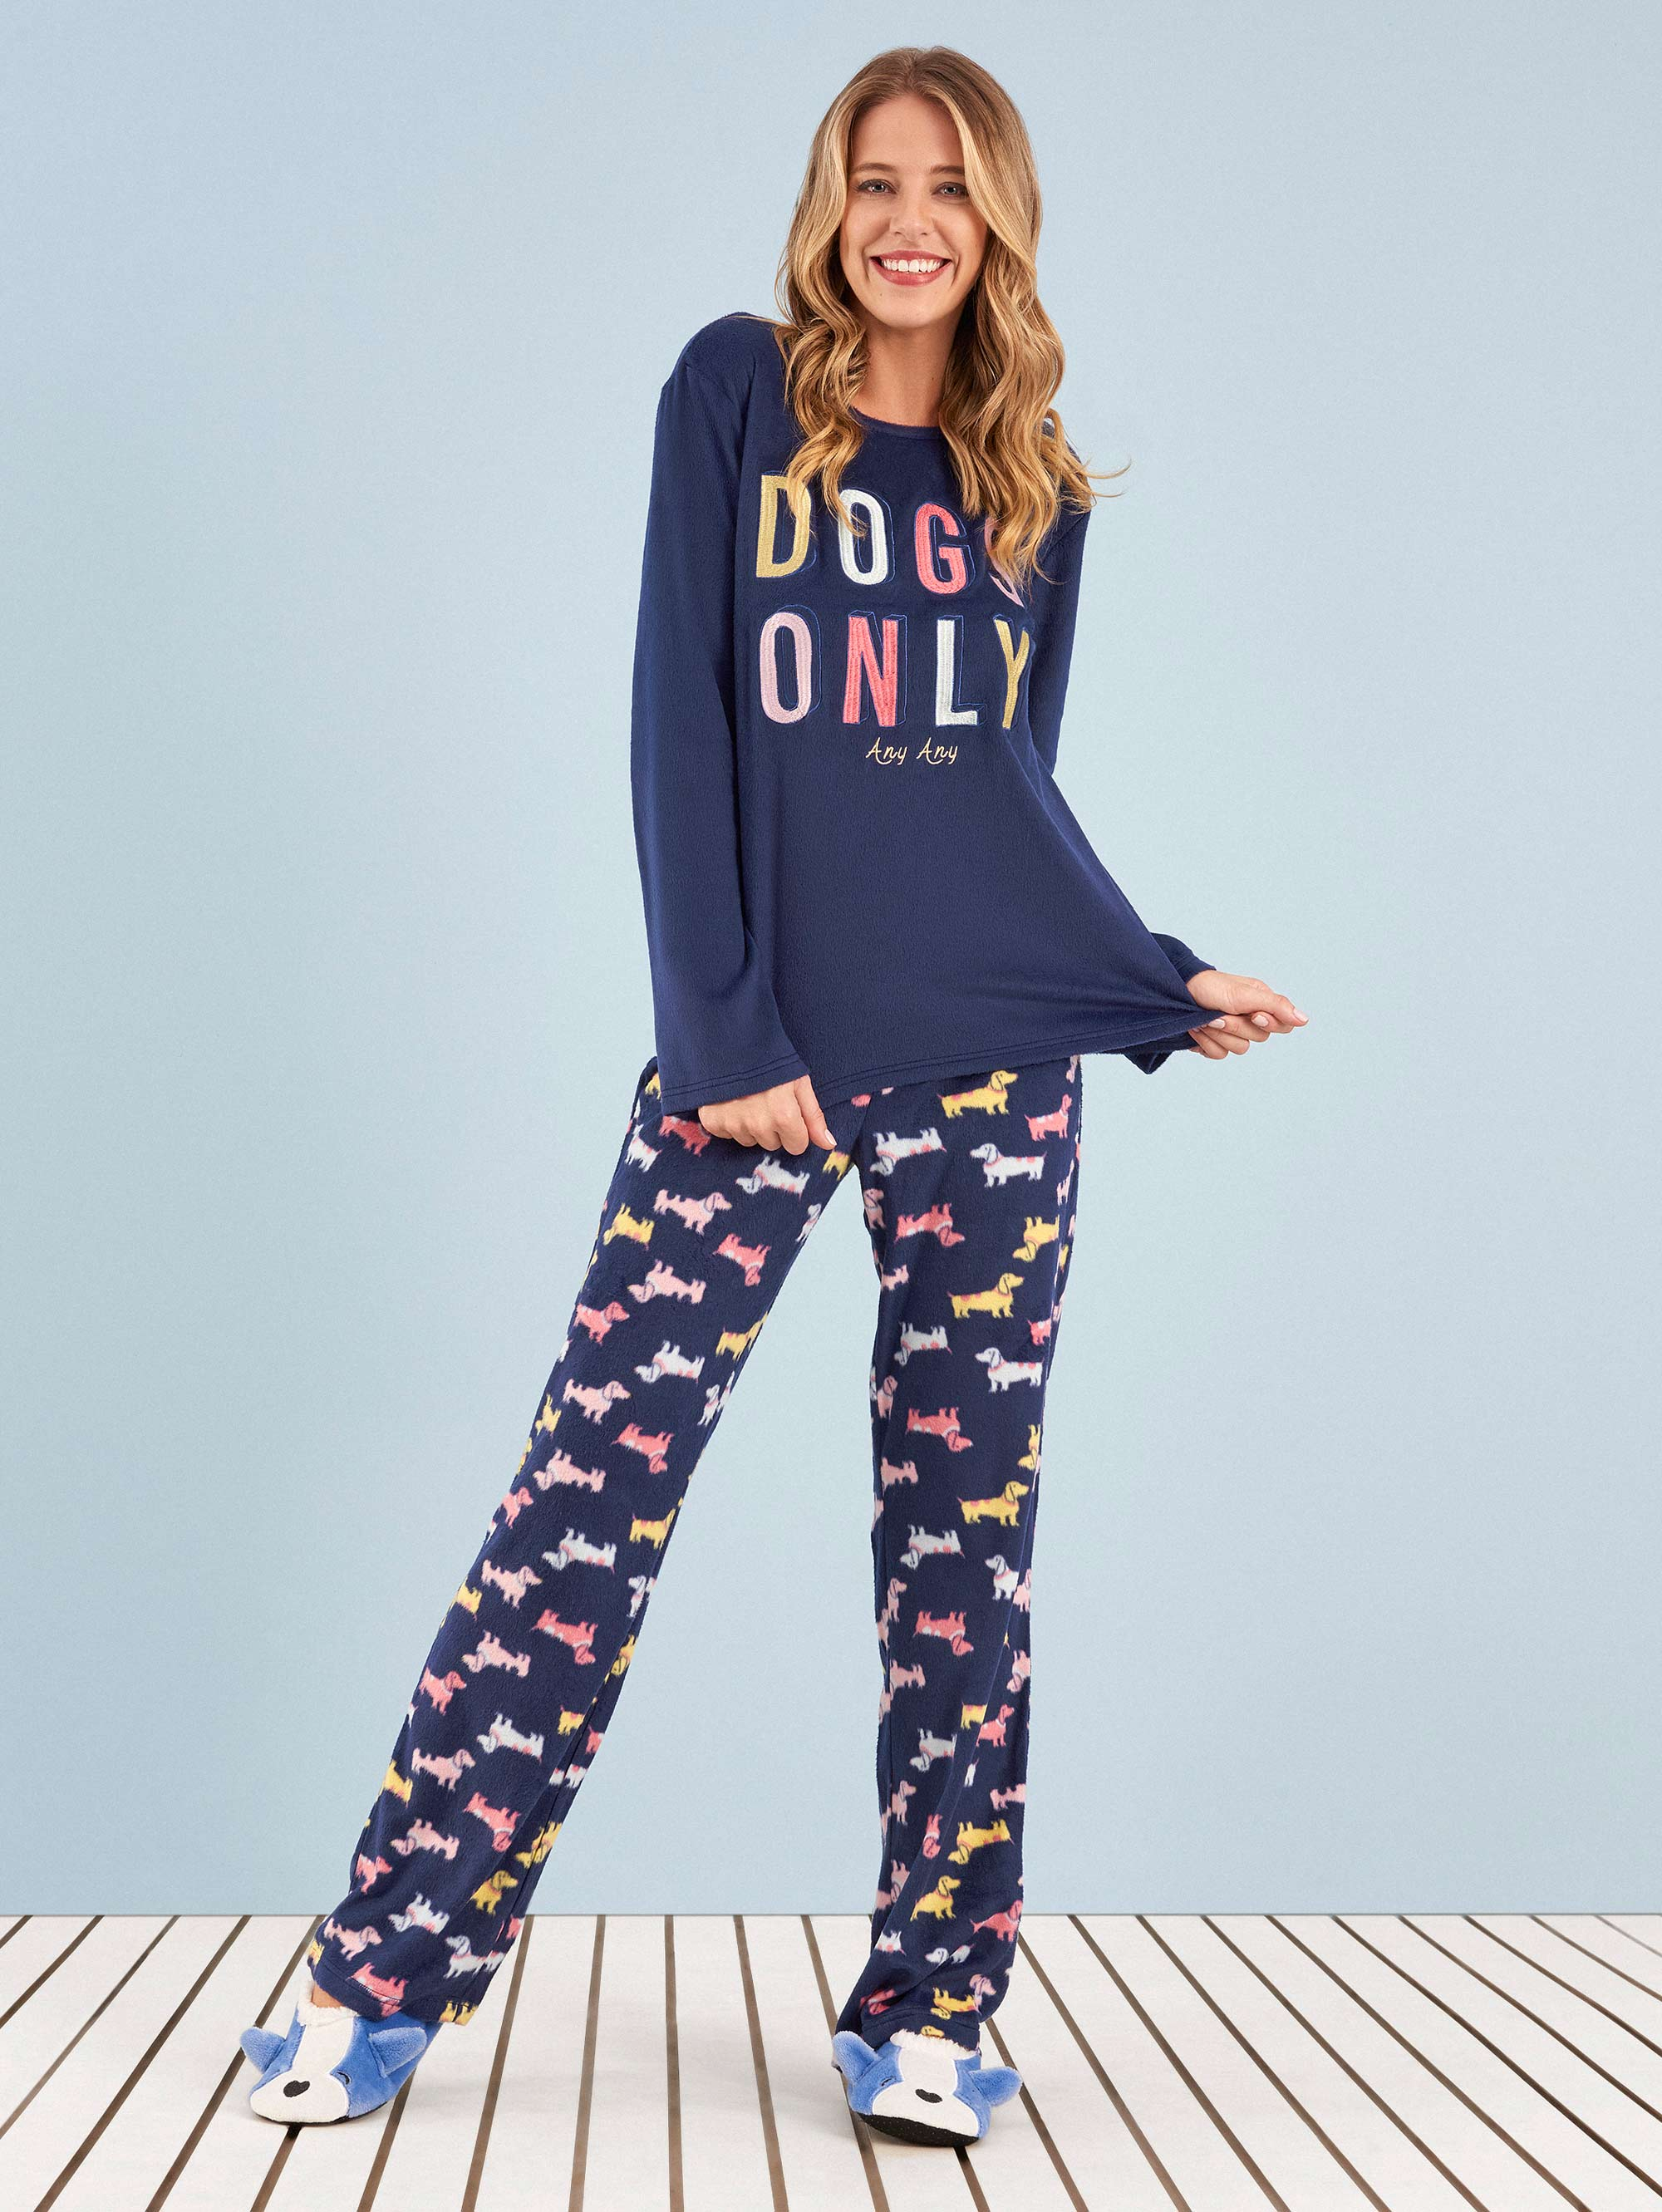 pijama-manga-longa-soft-dogs-only-any-any